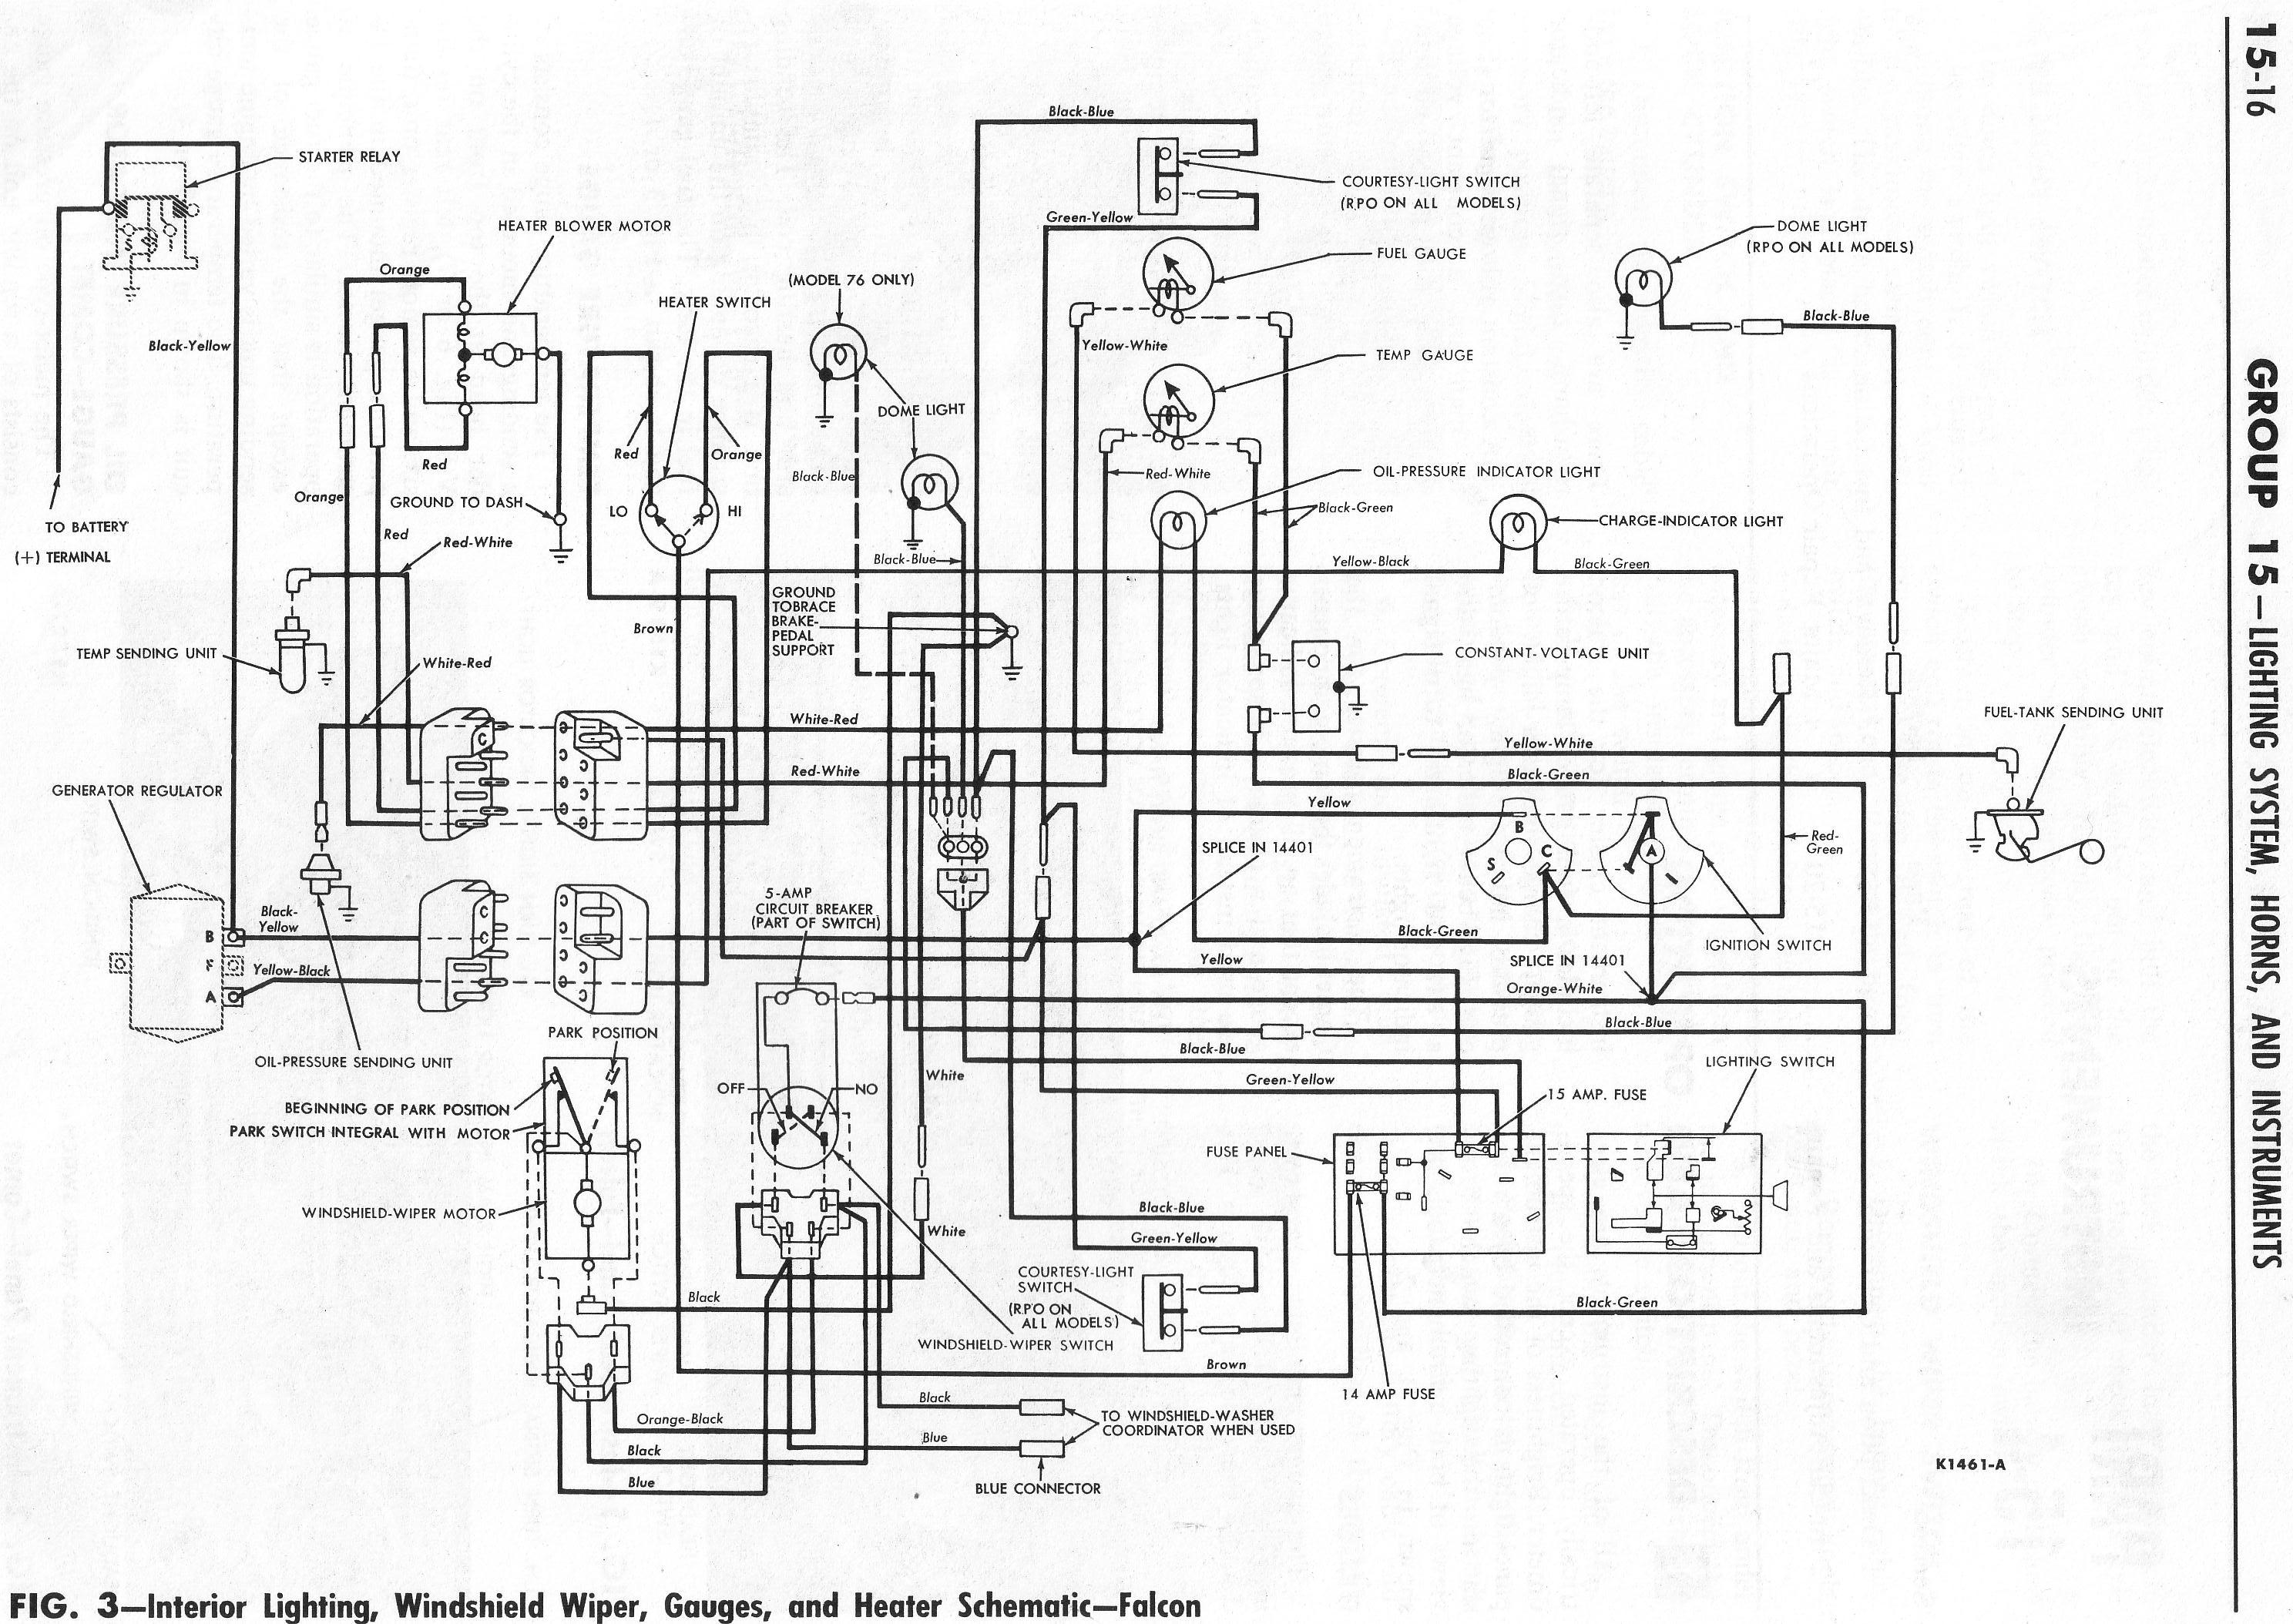 Ranchero Wiring Diagram Together With 1965 Ford Falcon